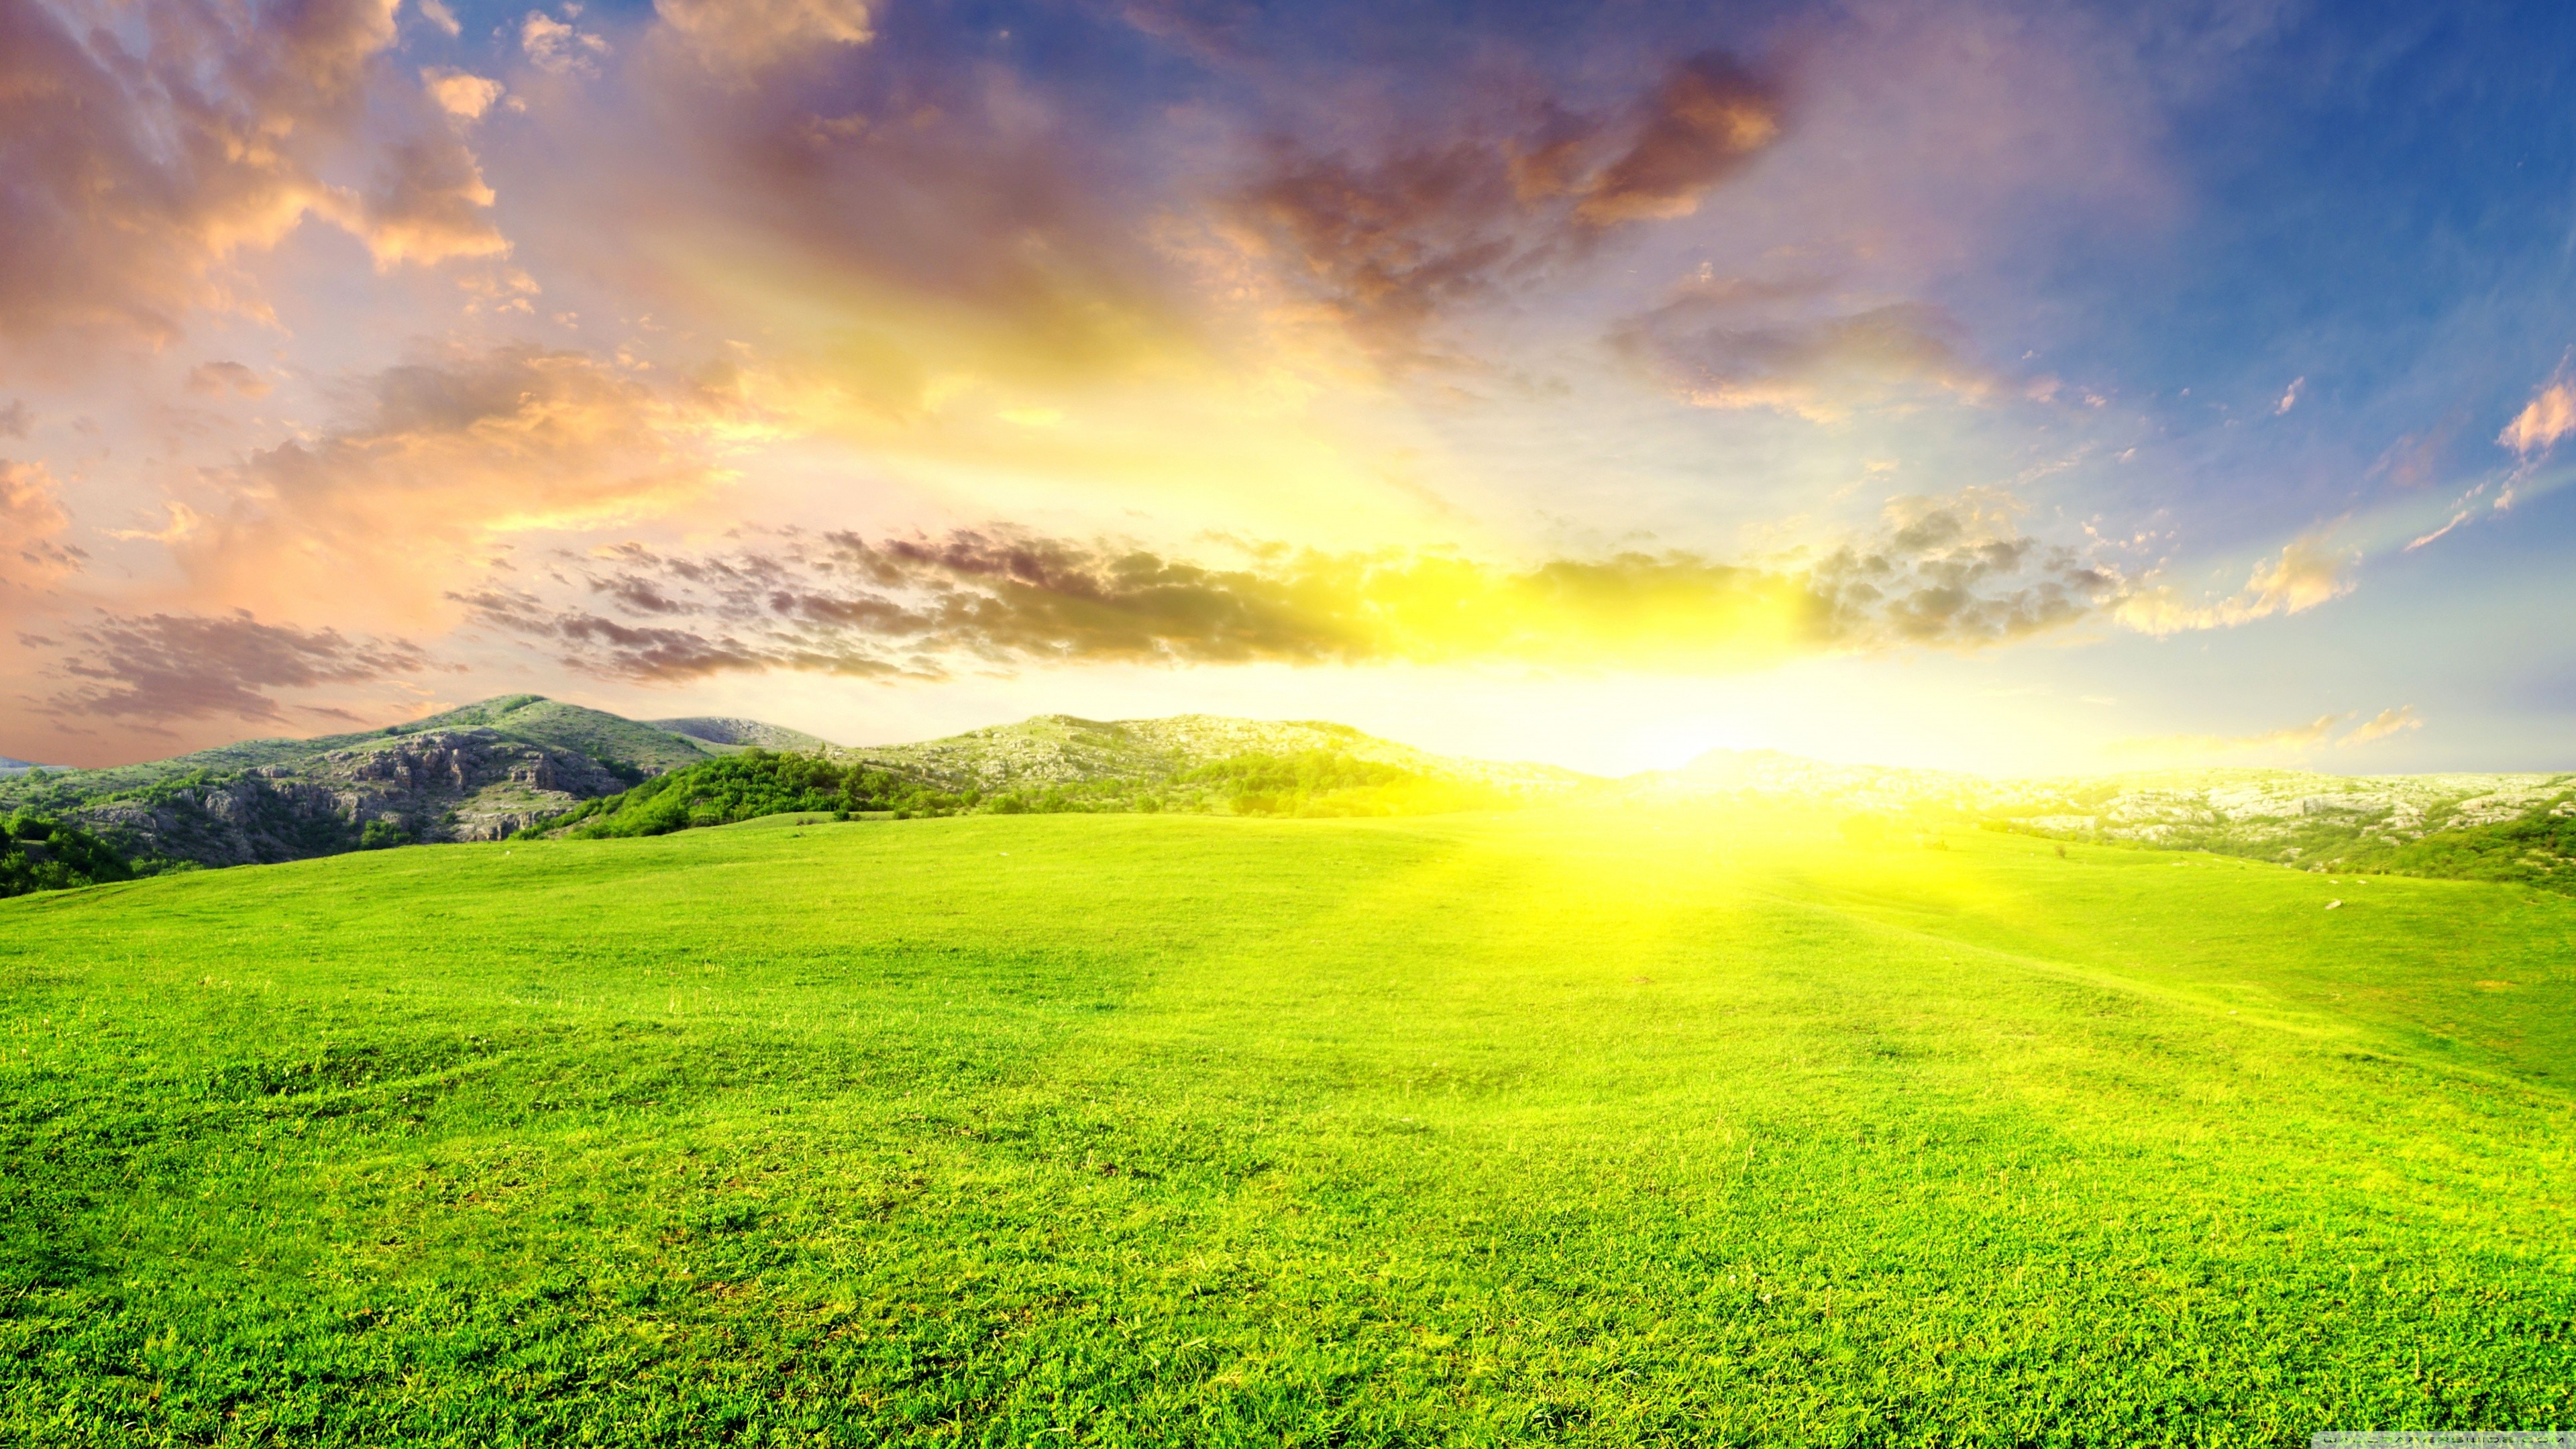 3840x2160 Free Sunlight HD wallpaper #1500444 ...